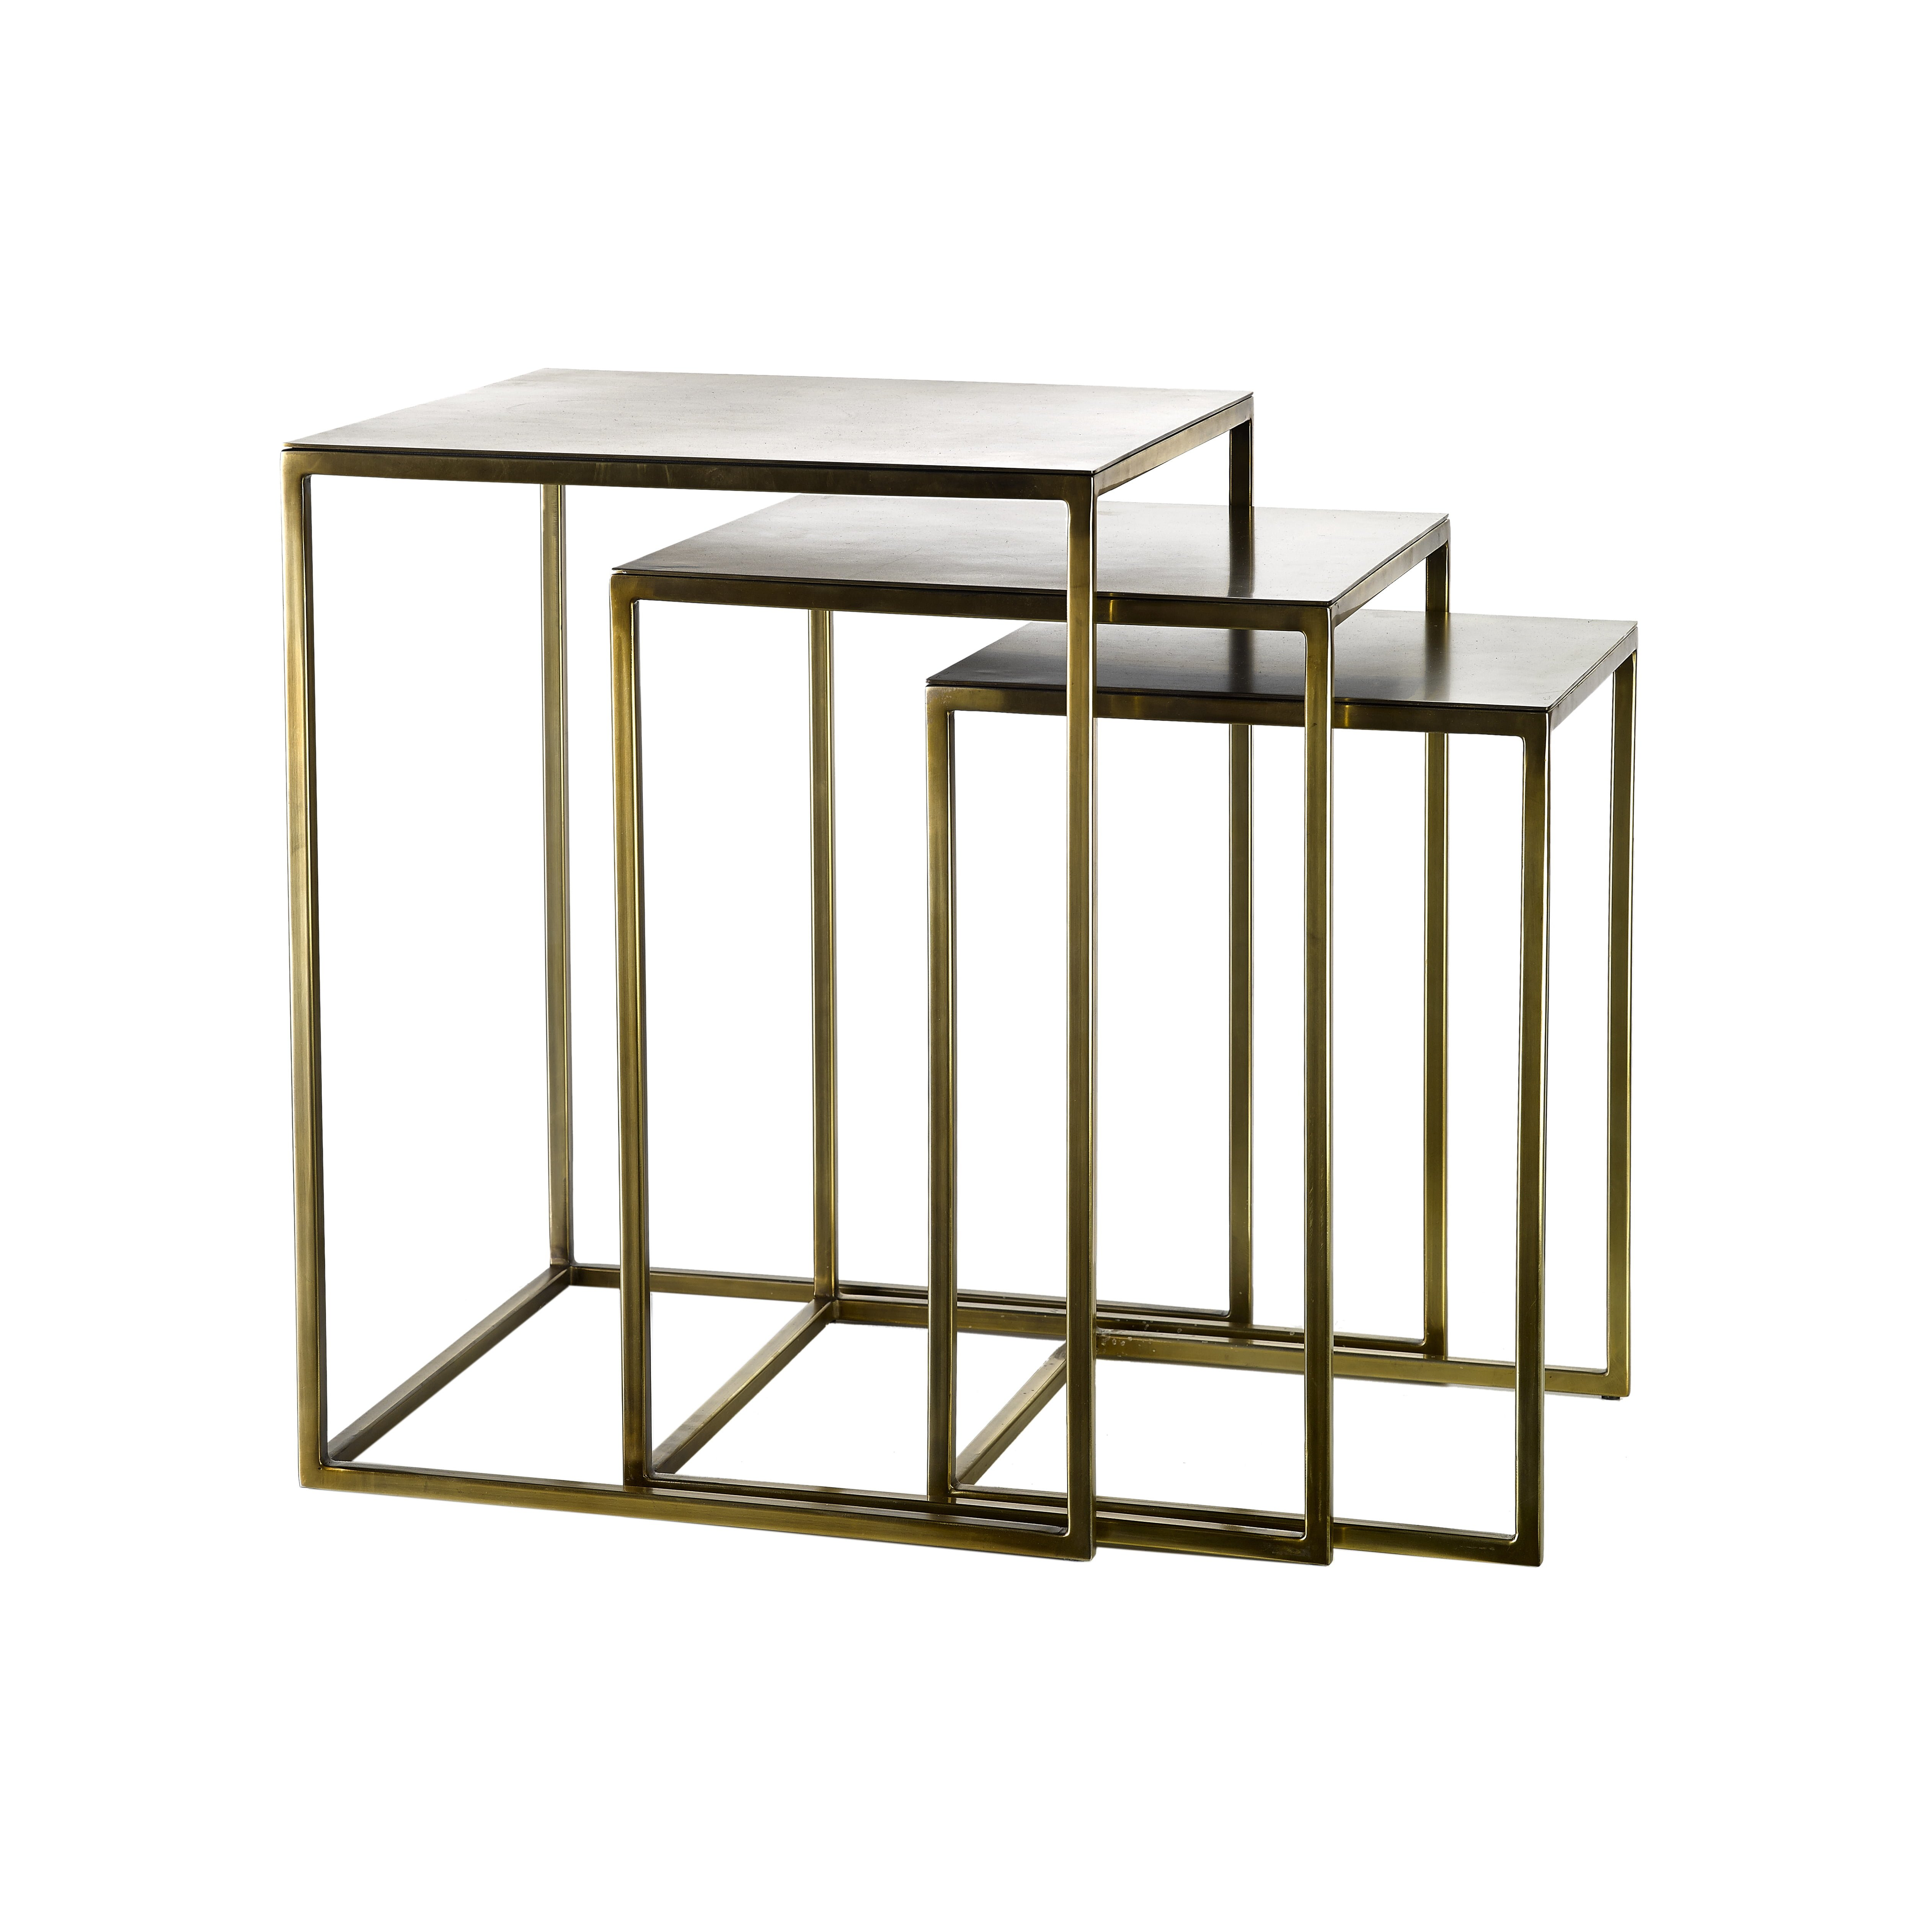 Set of three metal square nesting side tables with gold finish.